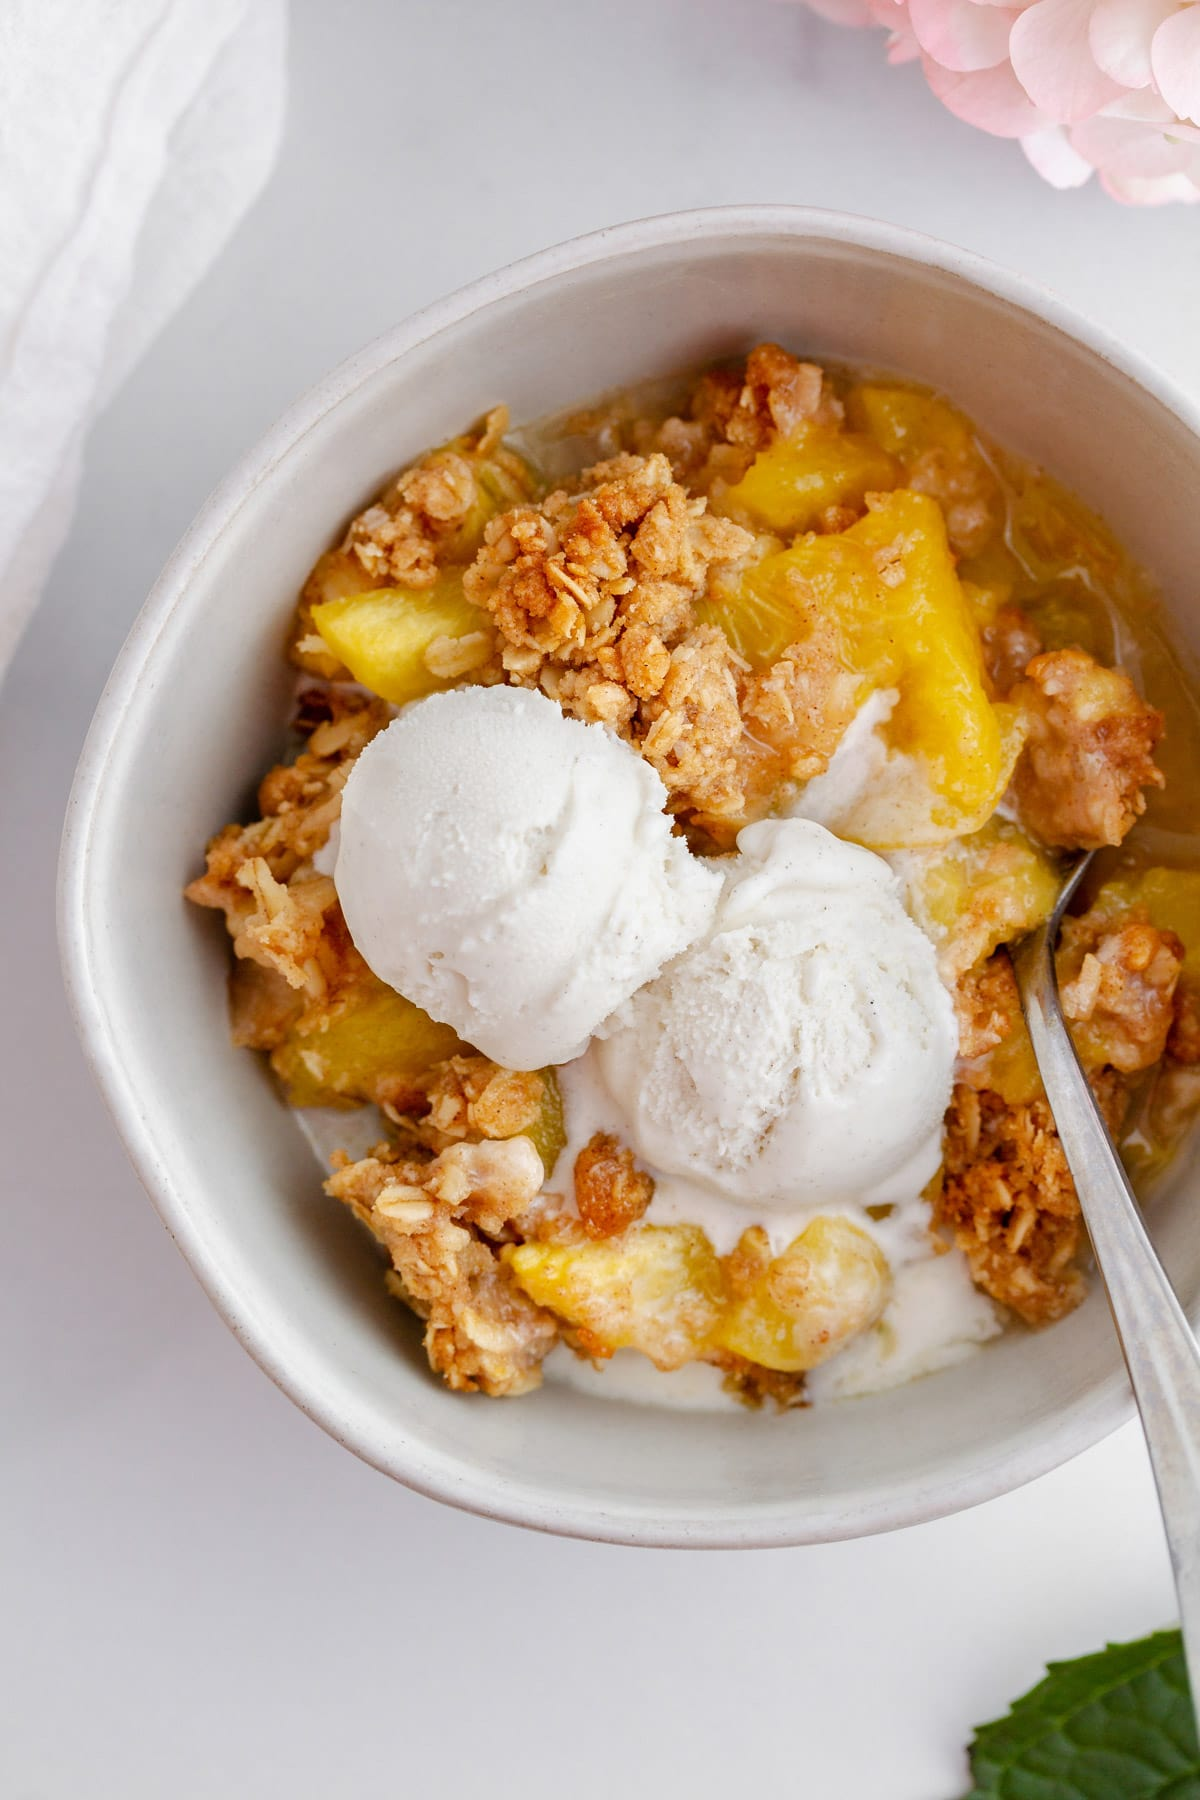 a bowl of peach crisp with a crunchy oat topping and vanilla ice cream on a surface